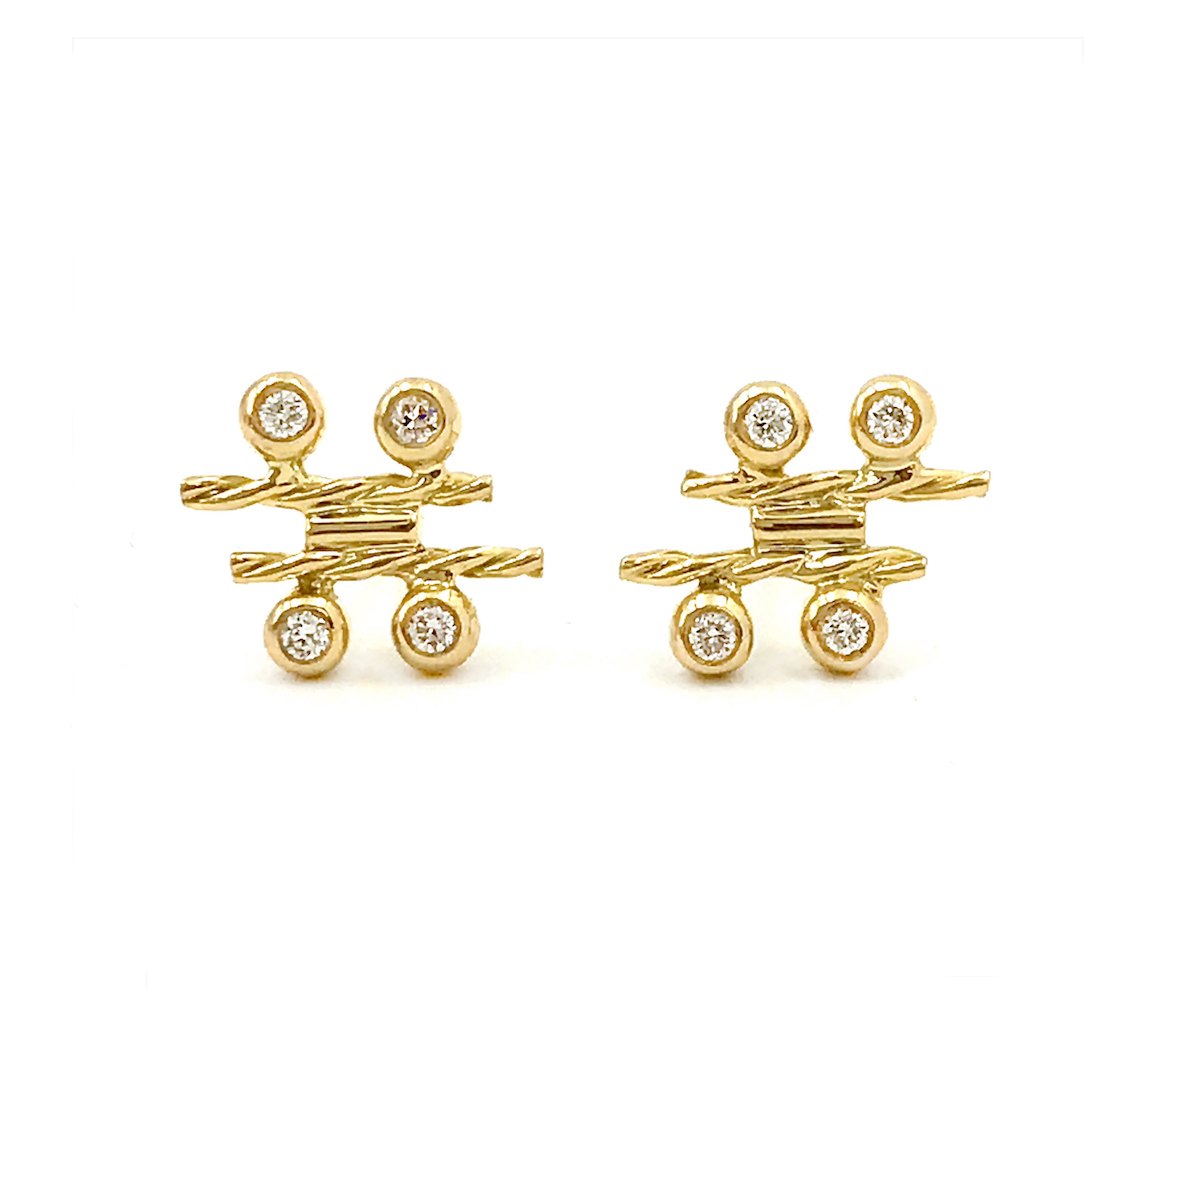 18k-Gold-Diamond-Four-Star-Twist-Bar-Stud-Earring- combine-bezel-set-diamonds-Jewelyrie's-signature-Pirouette Twist copy